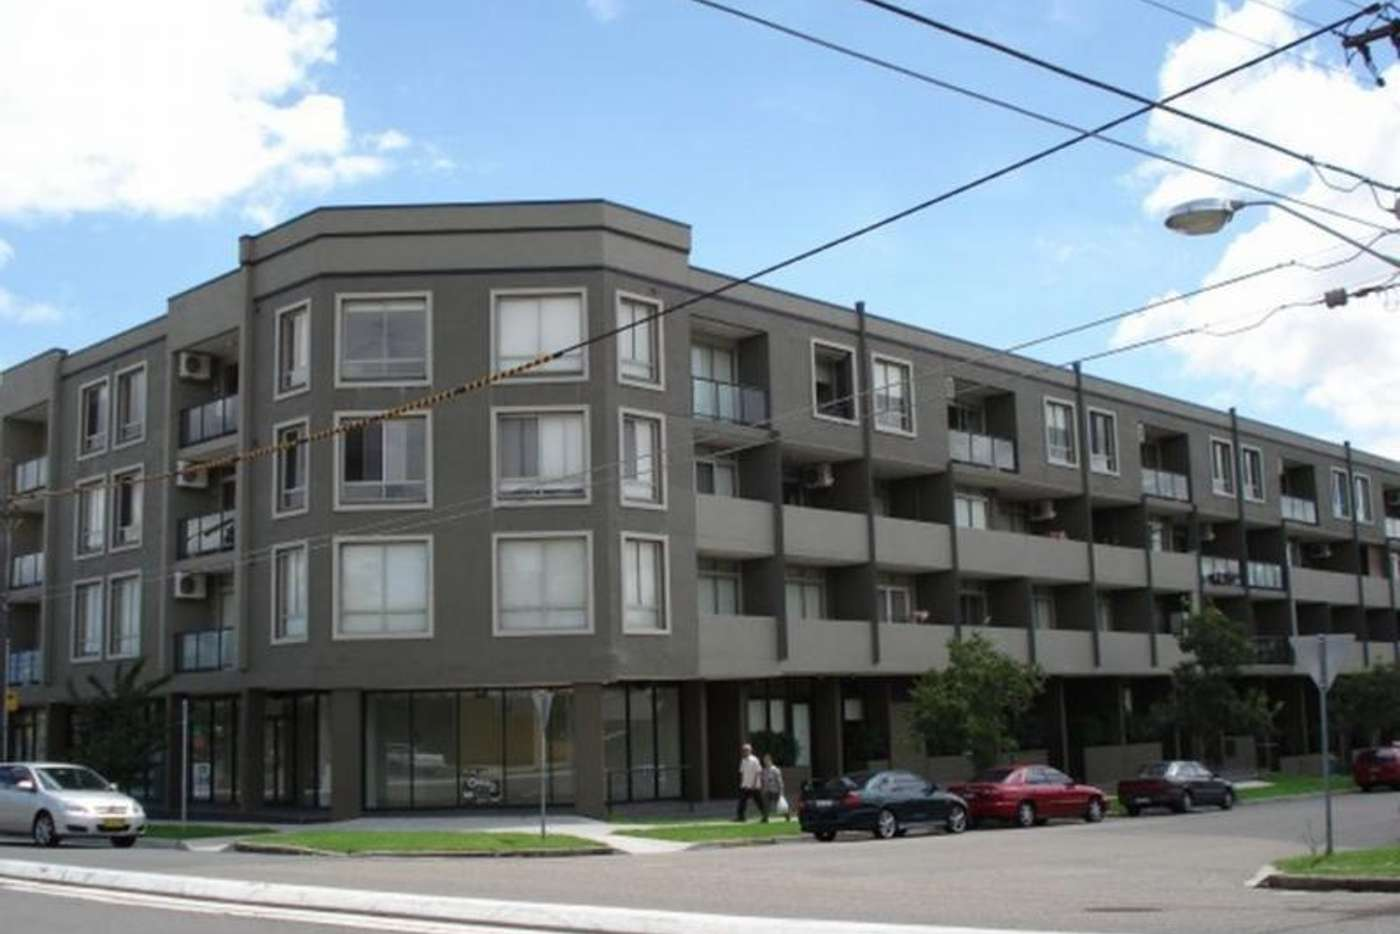 Main view of Homely apartment listing, 71/20 Herbert Street, West Ryde NSW 2114